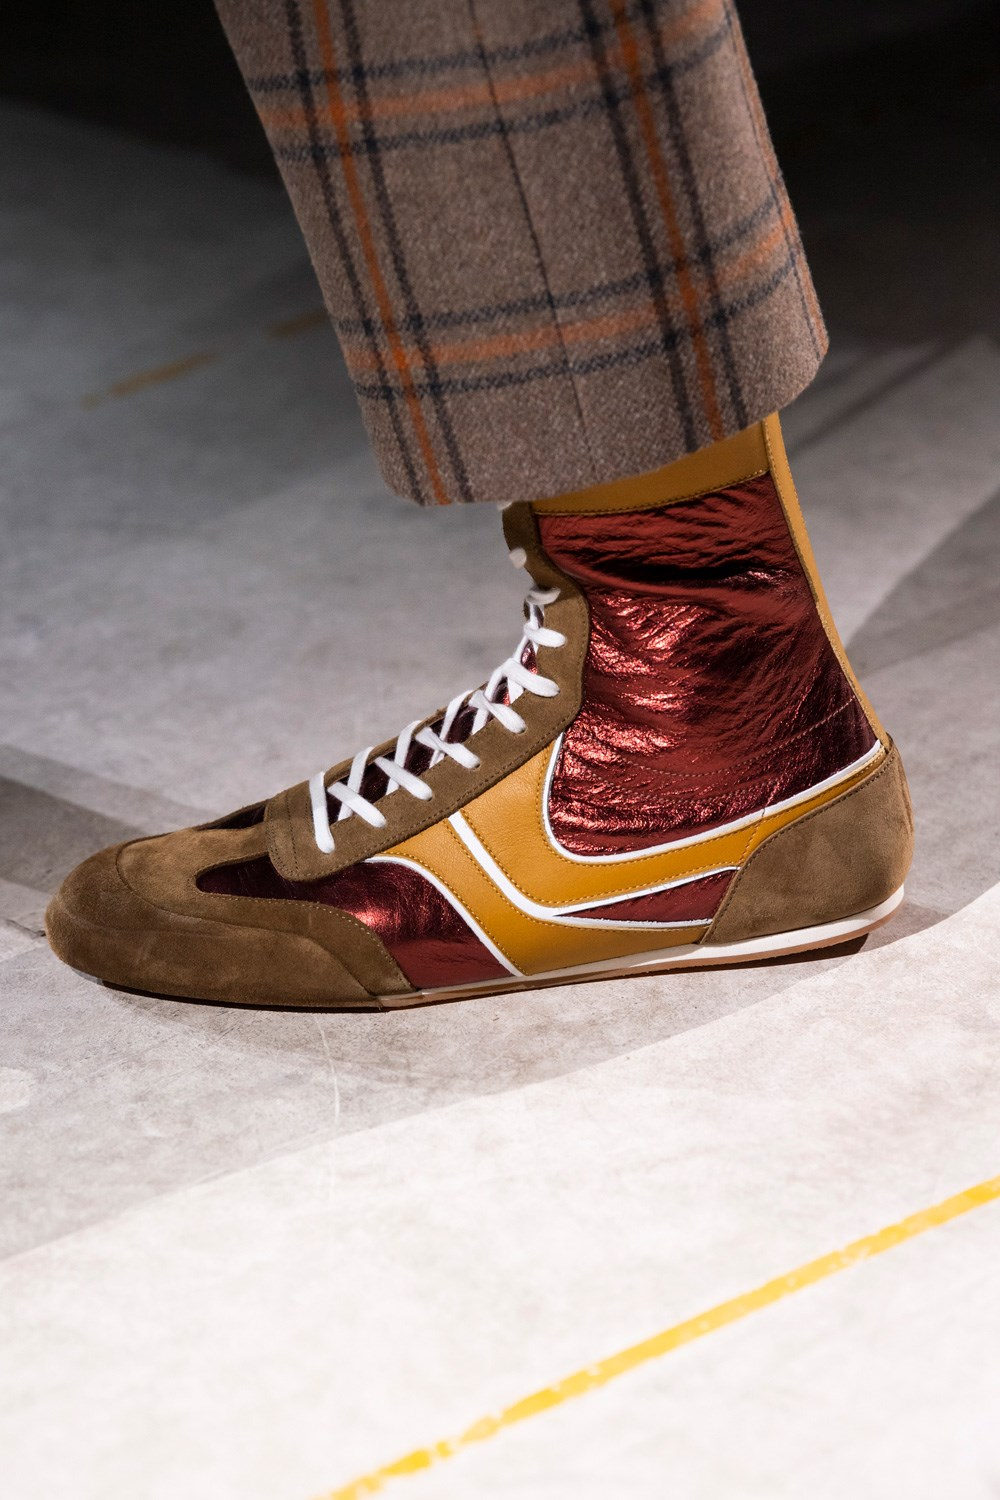 Dries Van Noten Fall 2020 Men's Fashion Show Photos